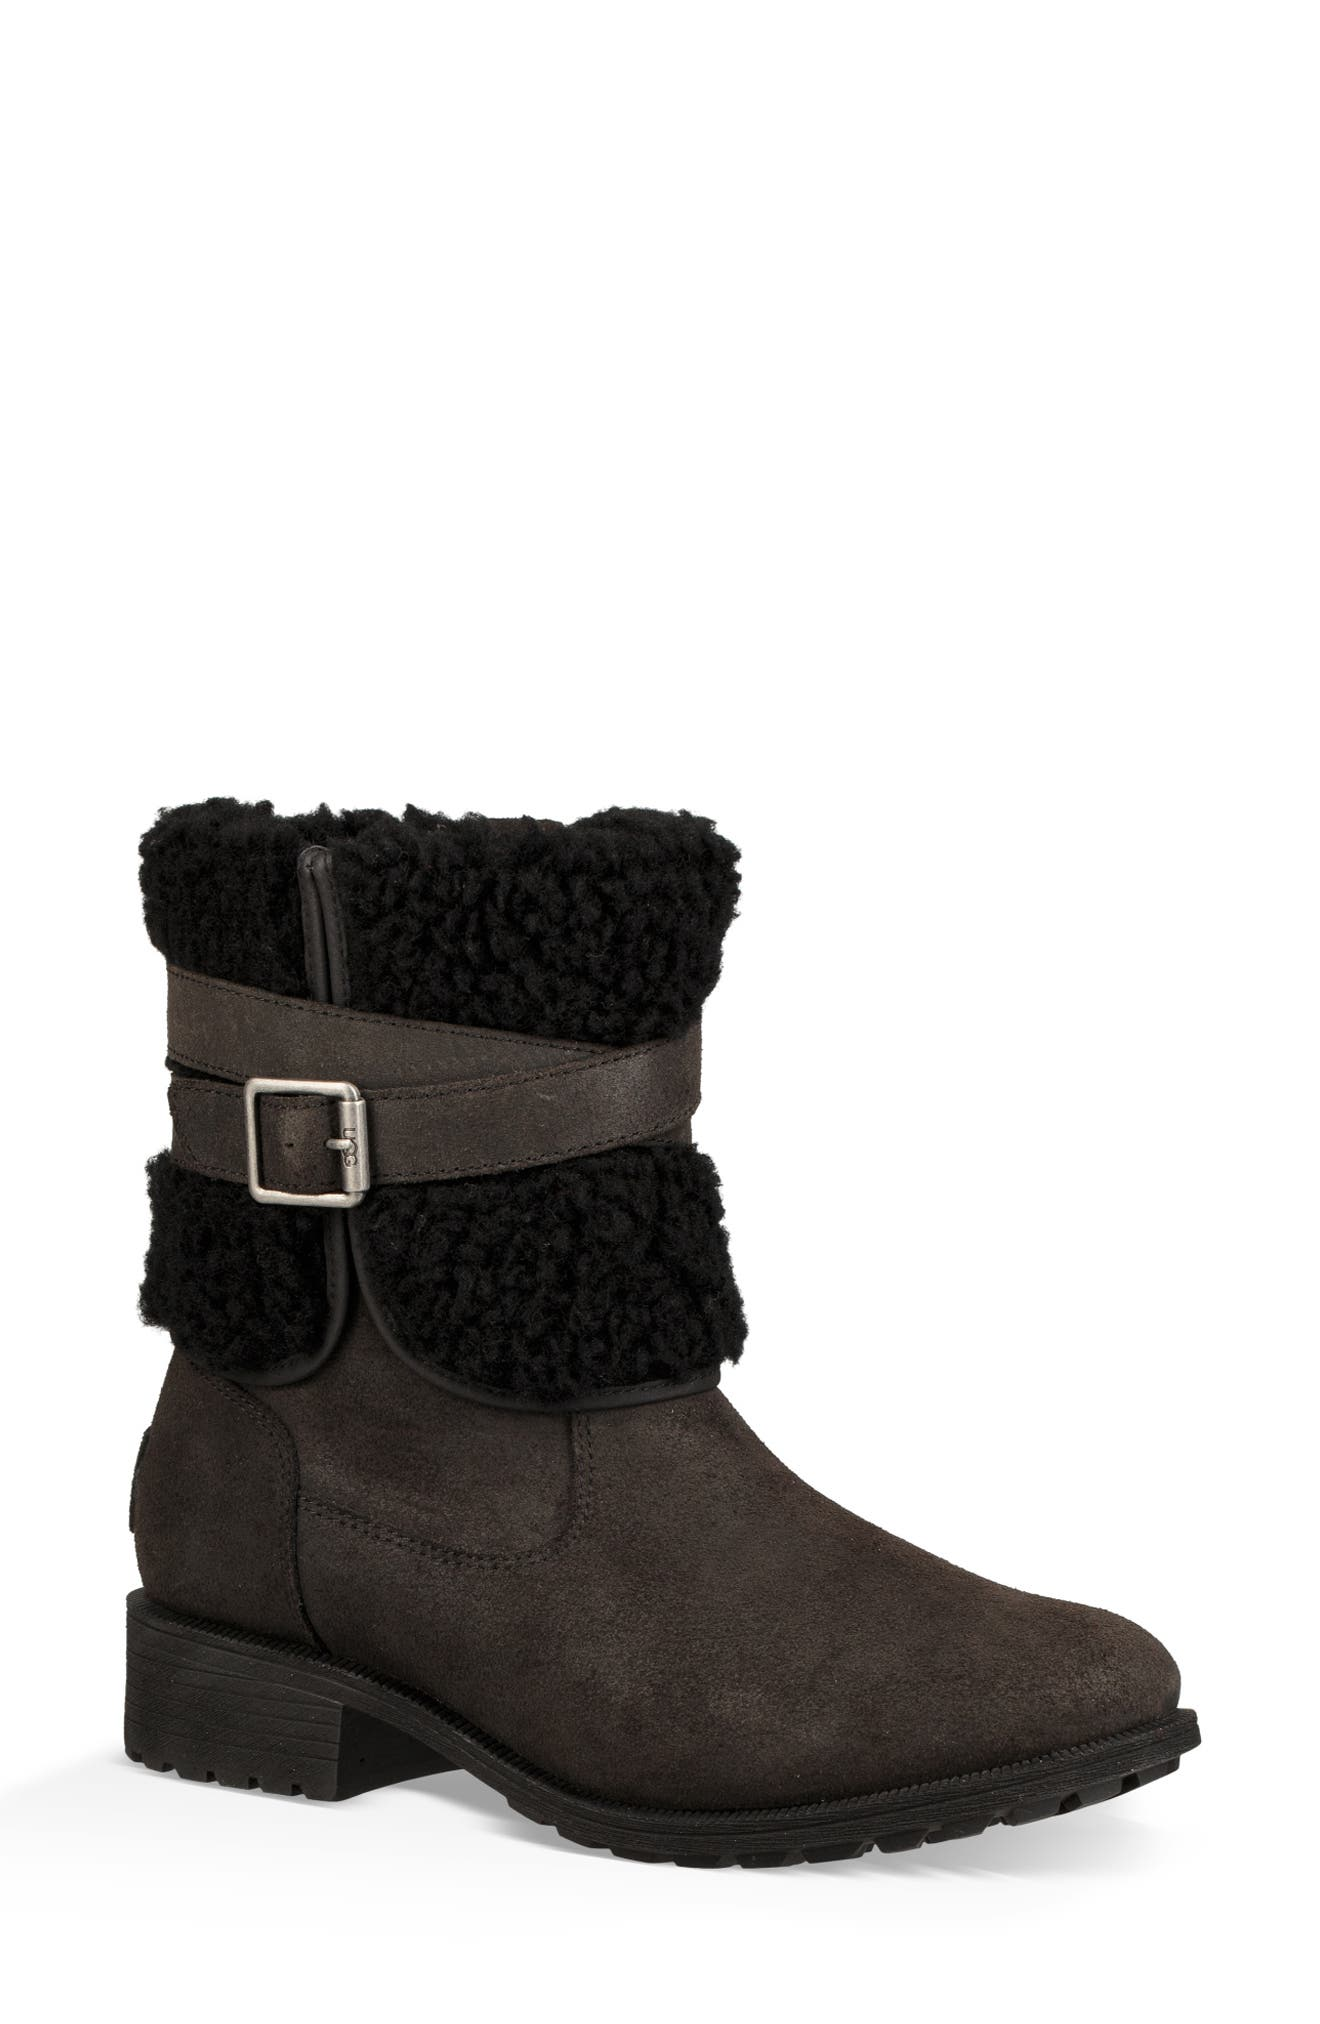 Blayre III Faux Shearling Cuff Bootie,                             Main thumbnail 1, color,                             BLACK